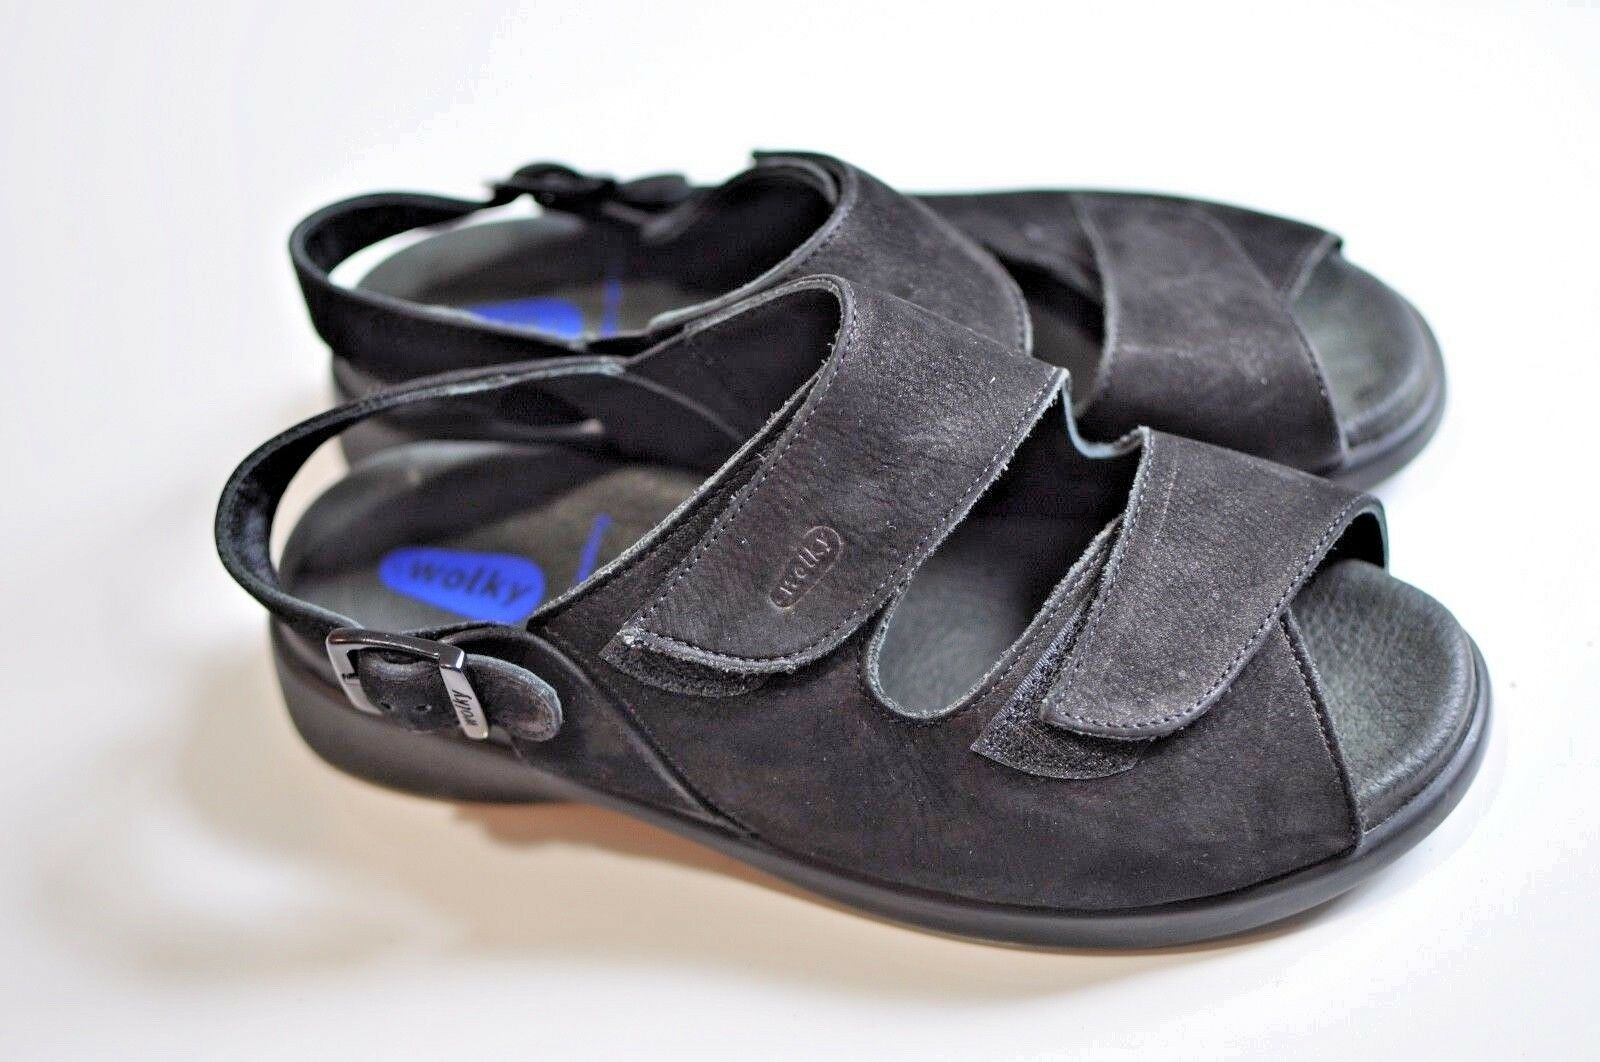 Wolky Womens black leather sandals size 38